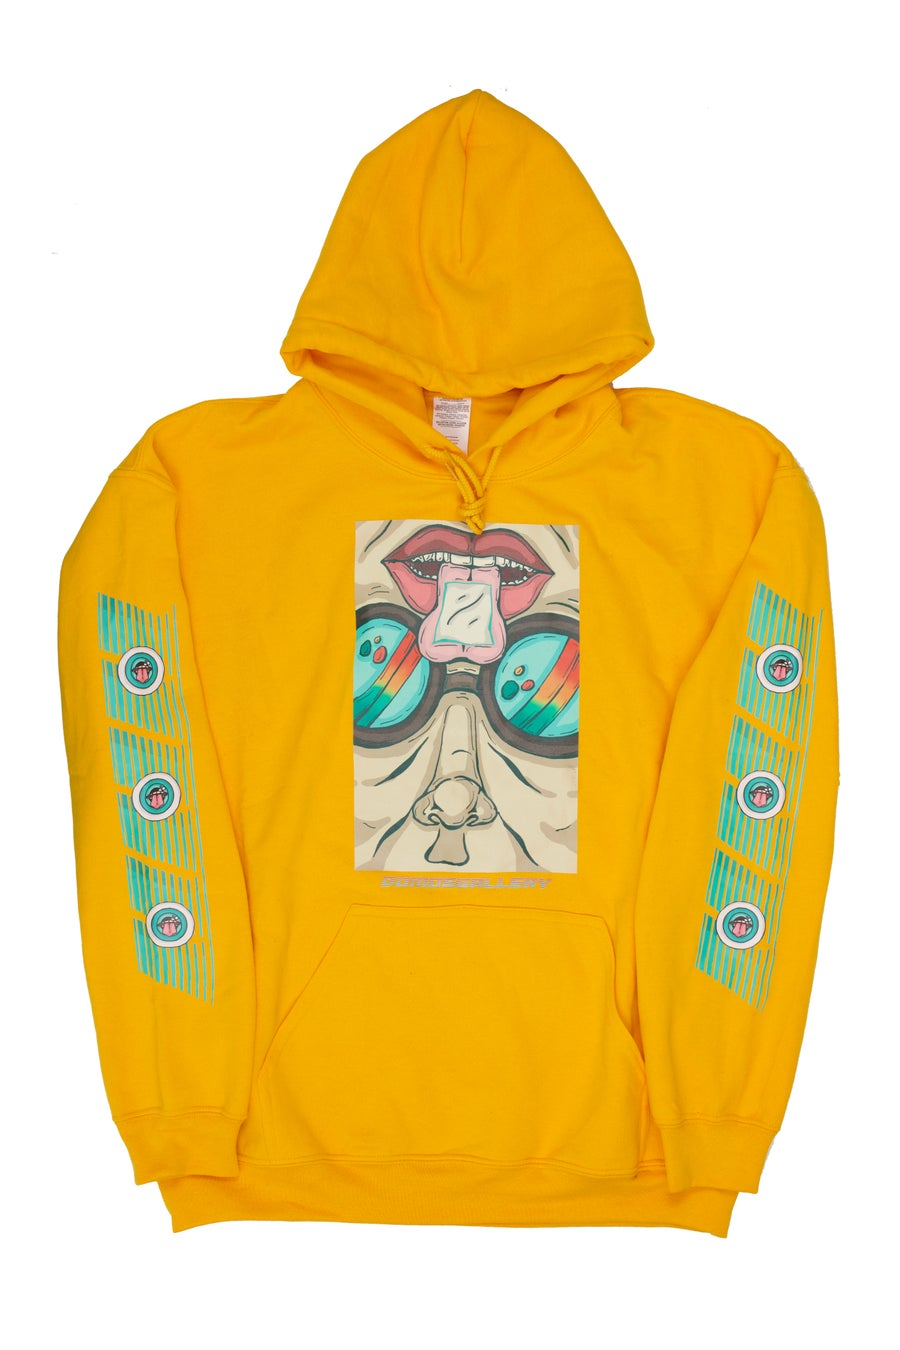 Image of Yellow 'Hacker' Hoody